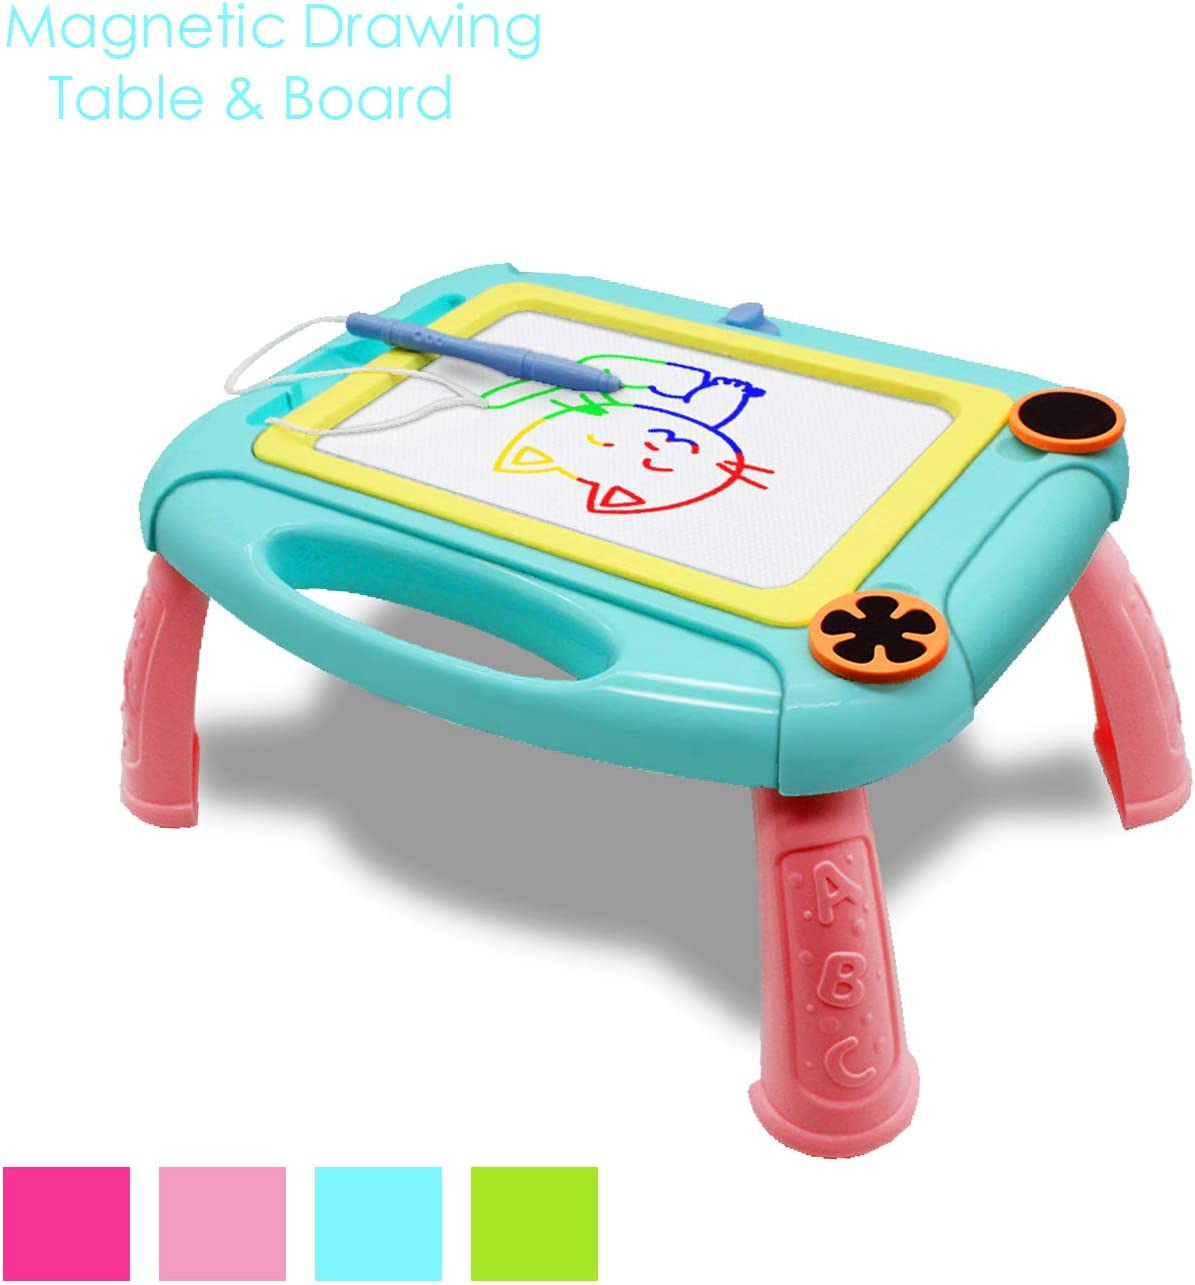 Hongkit Gift for 1 2 3 4 5 Years Old Girls,LCD Writing Tablet for Kids Memo Doodle Board e-Writers Writing Toy for Boys 1-5 Years Old Birthday Present LCD Drawing Pad Blue Pig TENOL